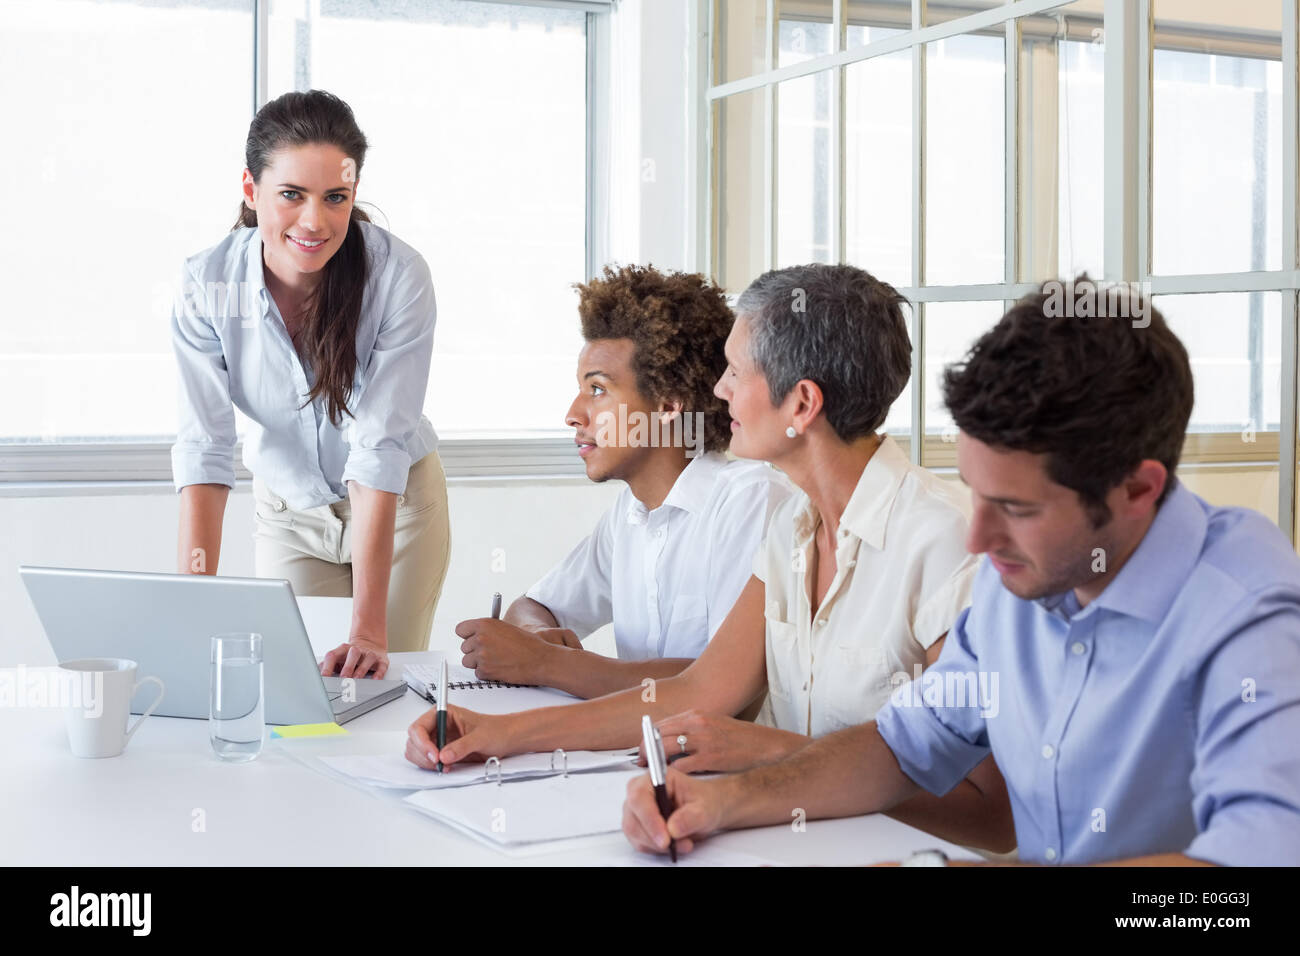 Casual workers at important meeting - Stock Image